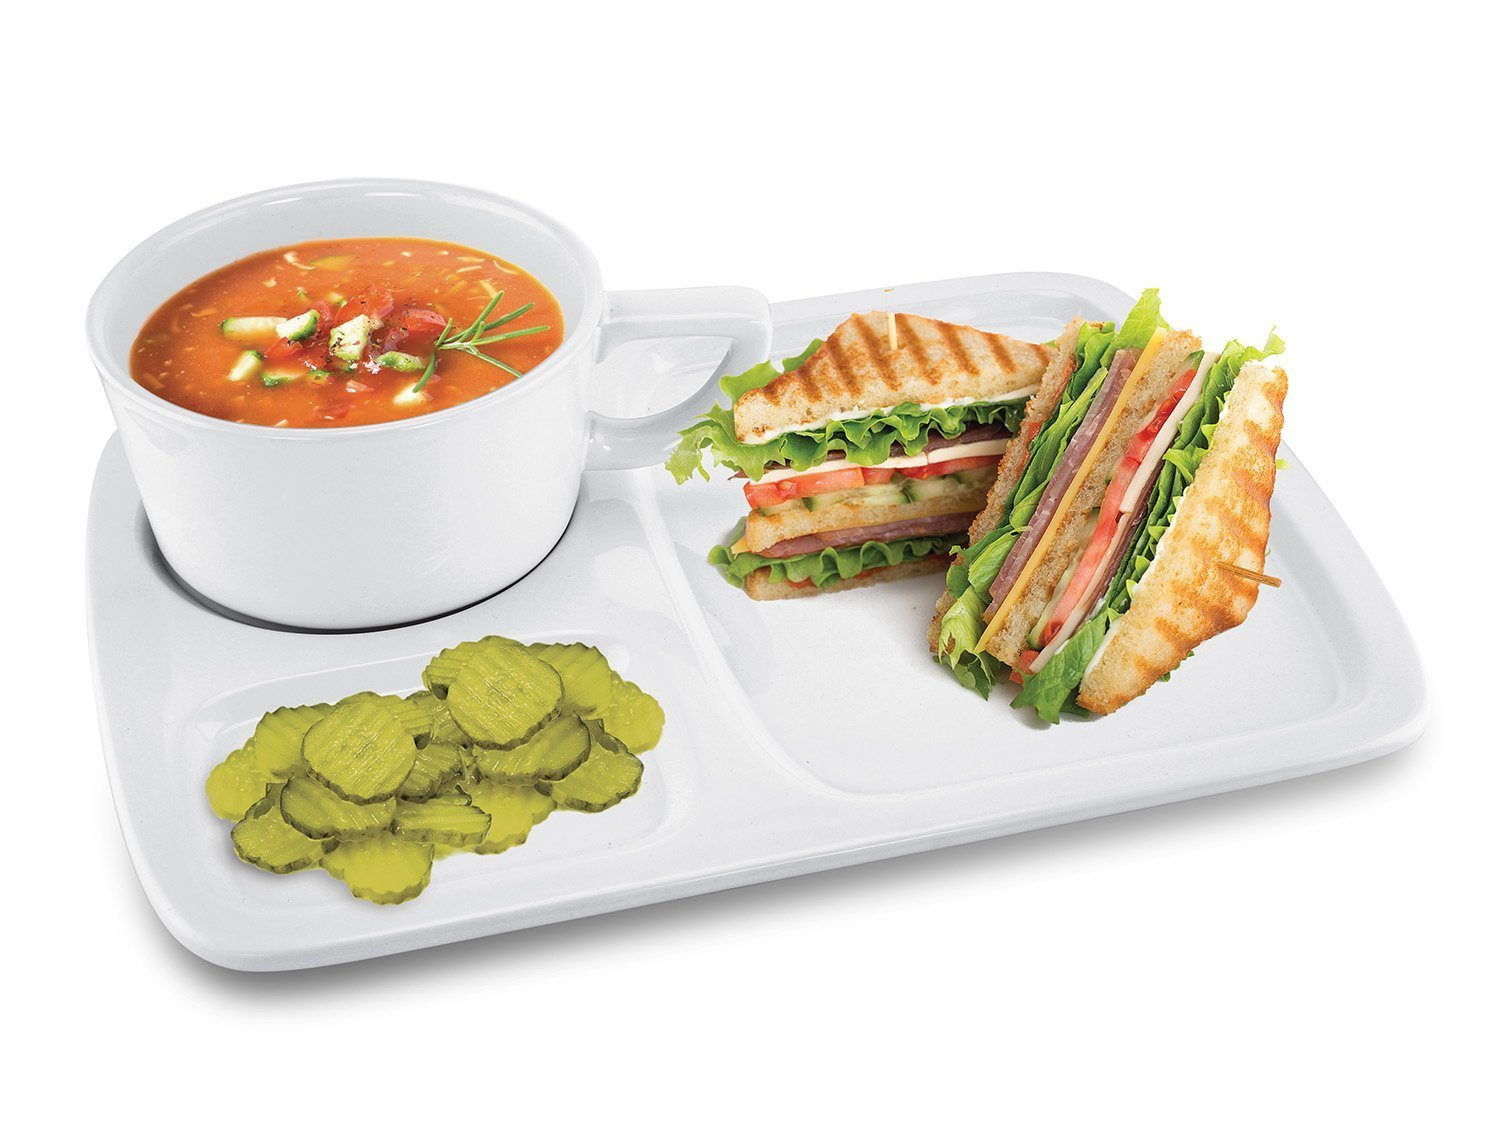 KOVOT ceramic Soup and Sandwich Set | amazon.com